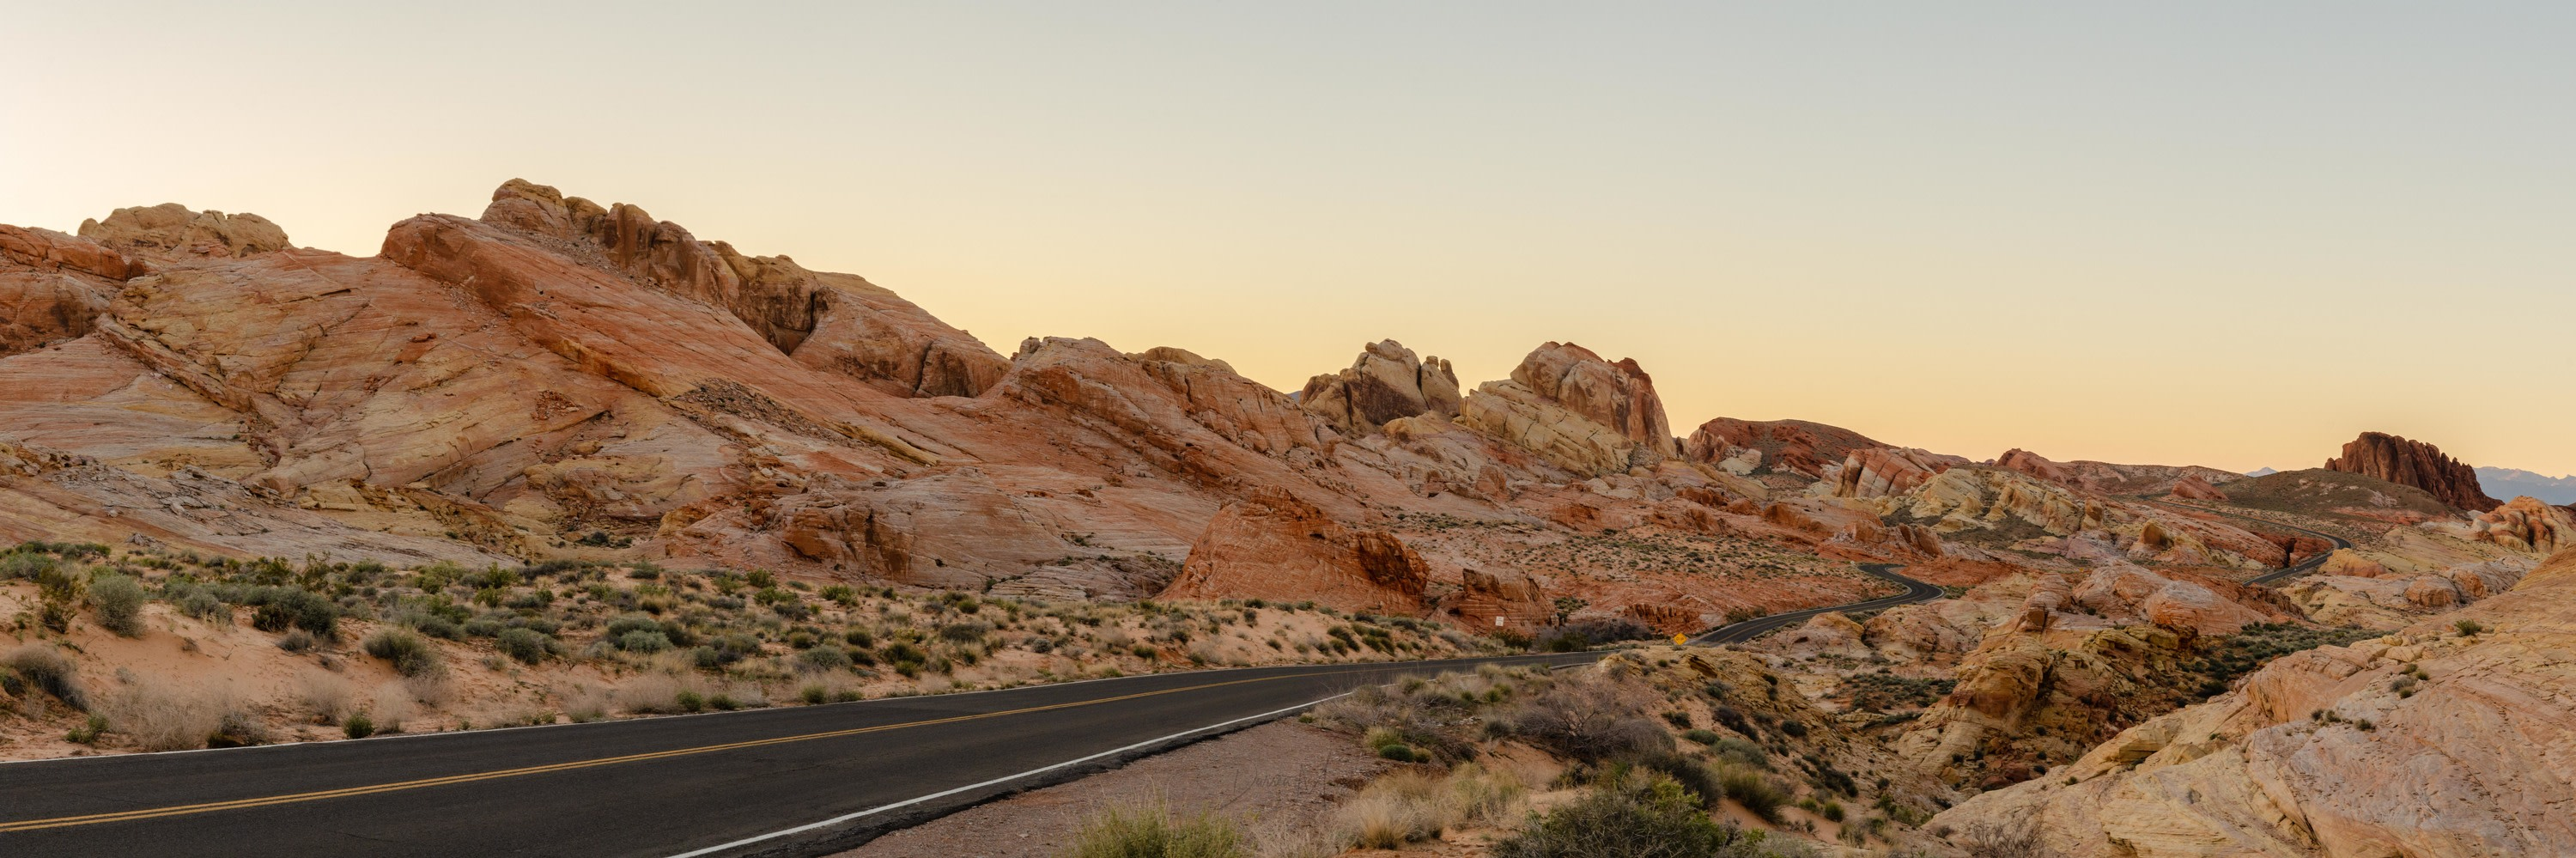 <div class='title'>           Valley Of Fire         </div>